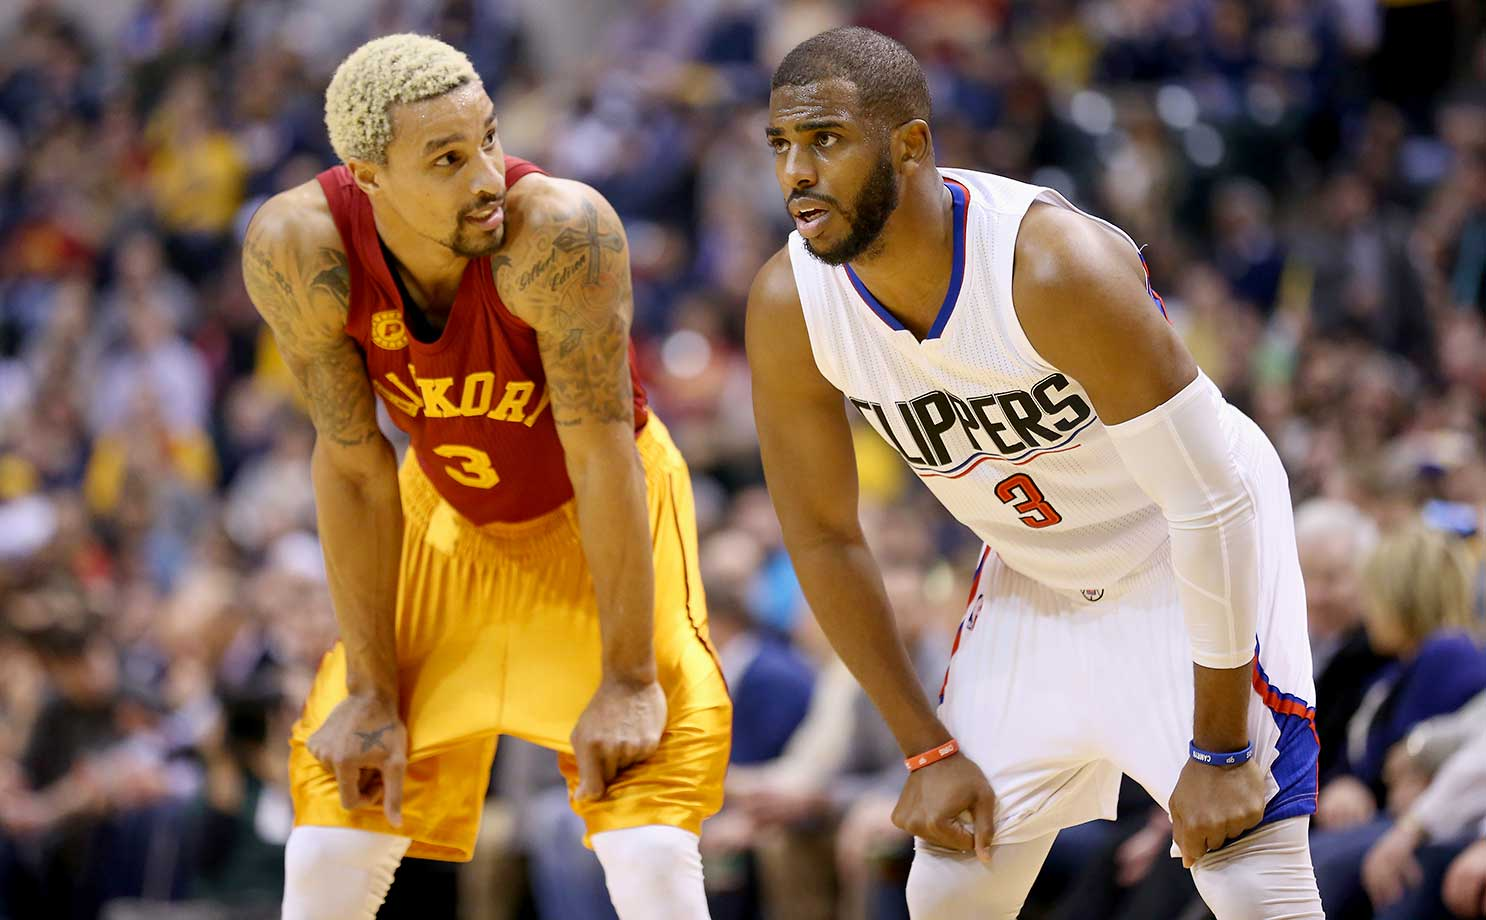 Chris Paul of the Los Angeles Clippers and George Hill of the Indiana Pacers during Tuesday's game at Bankers Life Fieldhouse in Indianapolis, Ind.